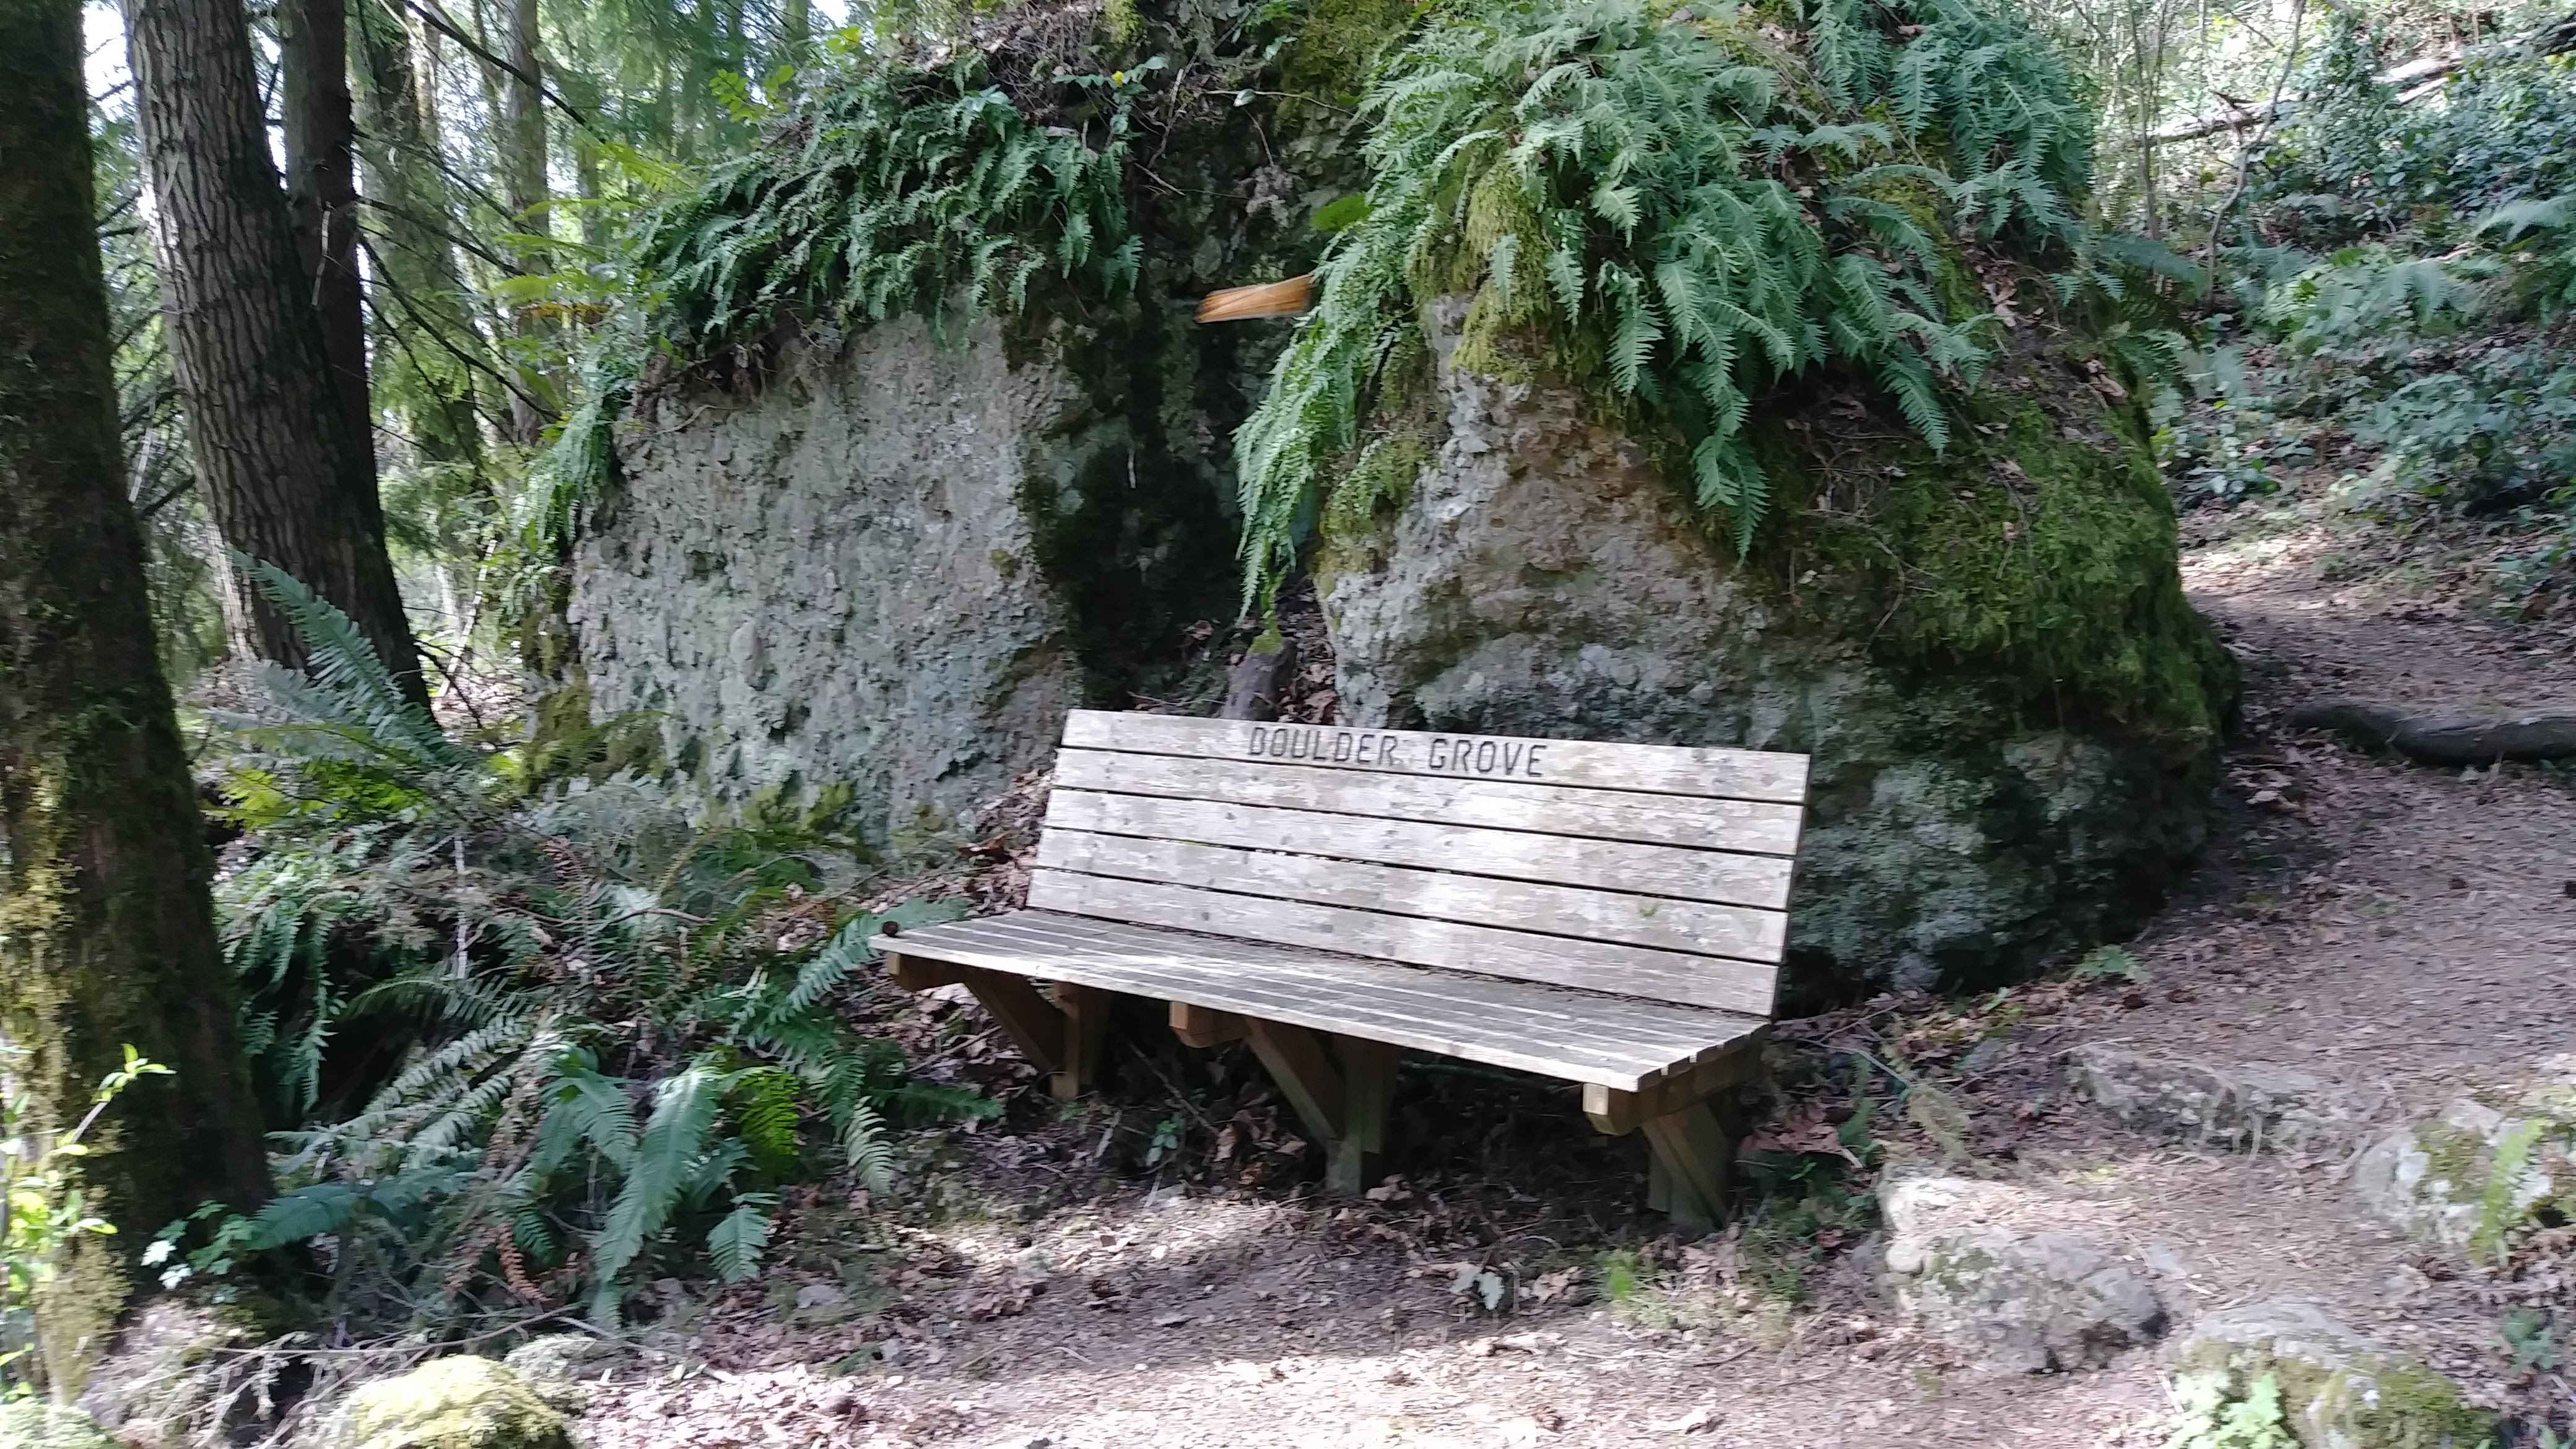 ../images/trails/terrace//09 Boulder Grove with Rocks from Glacier.jpg